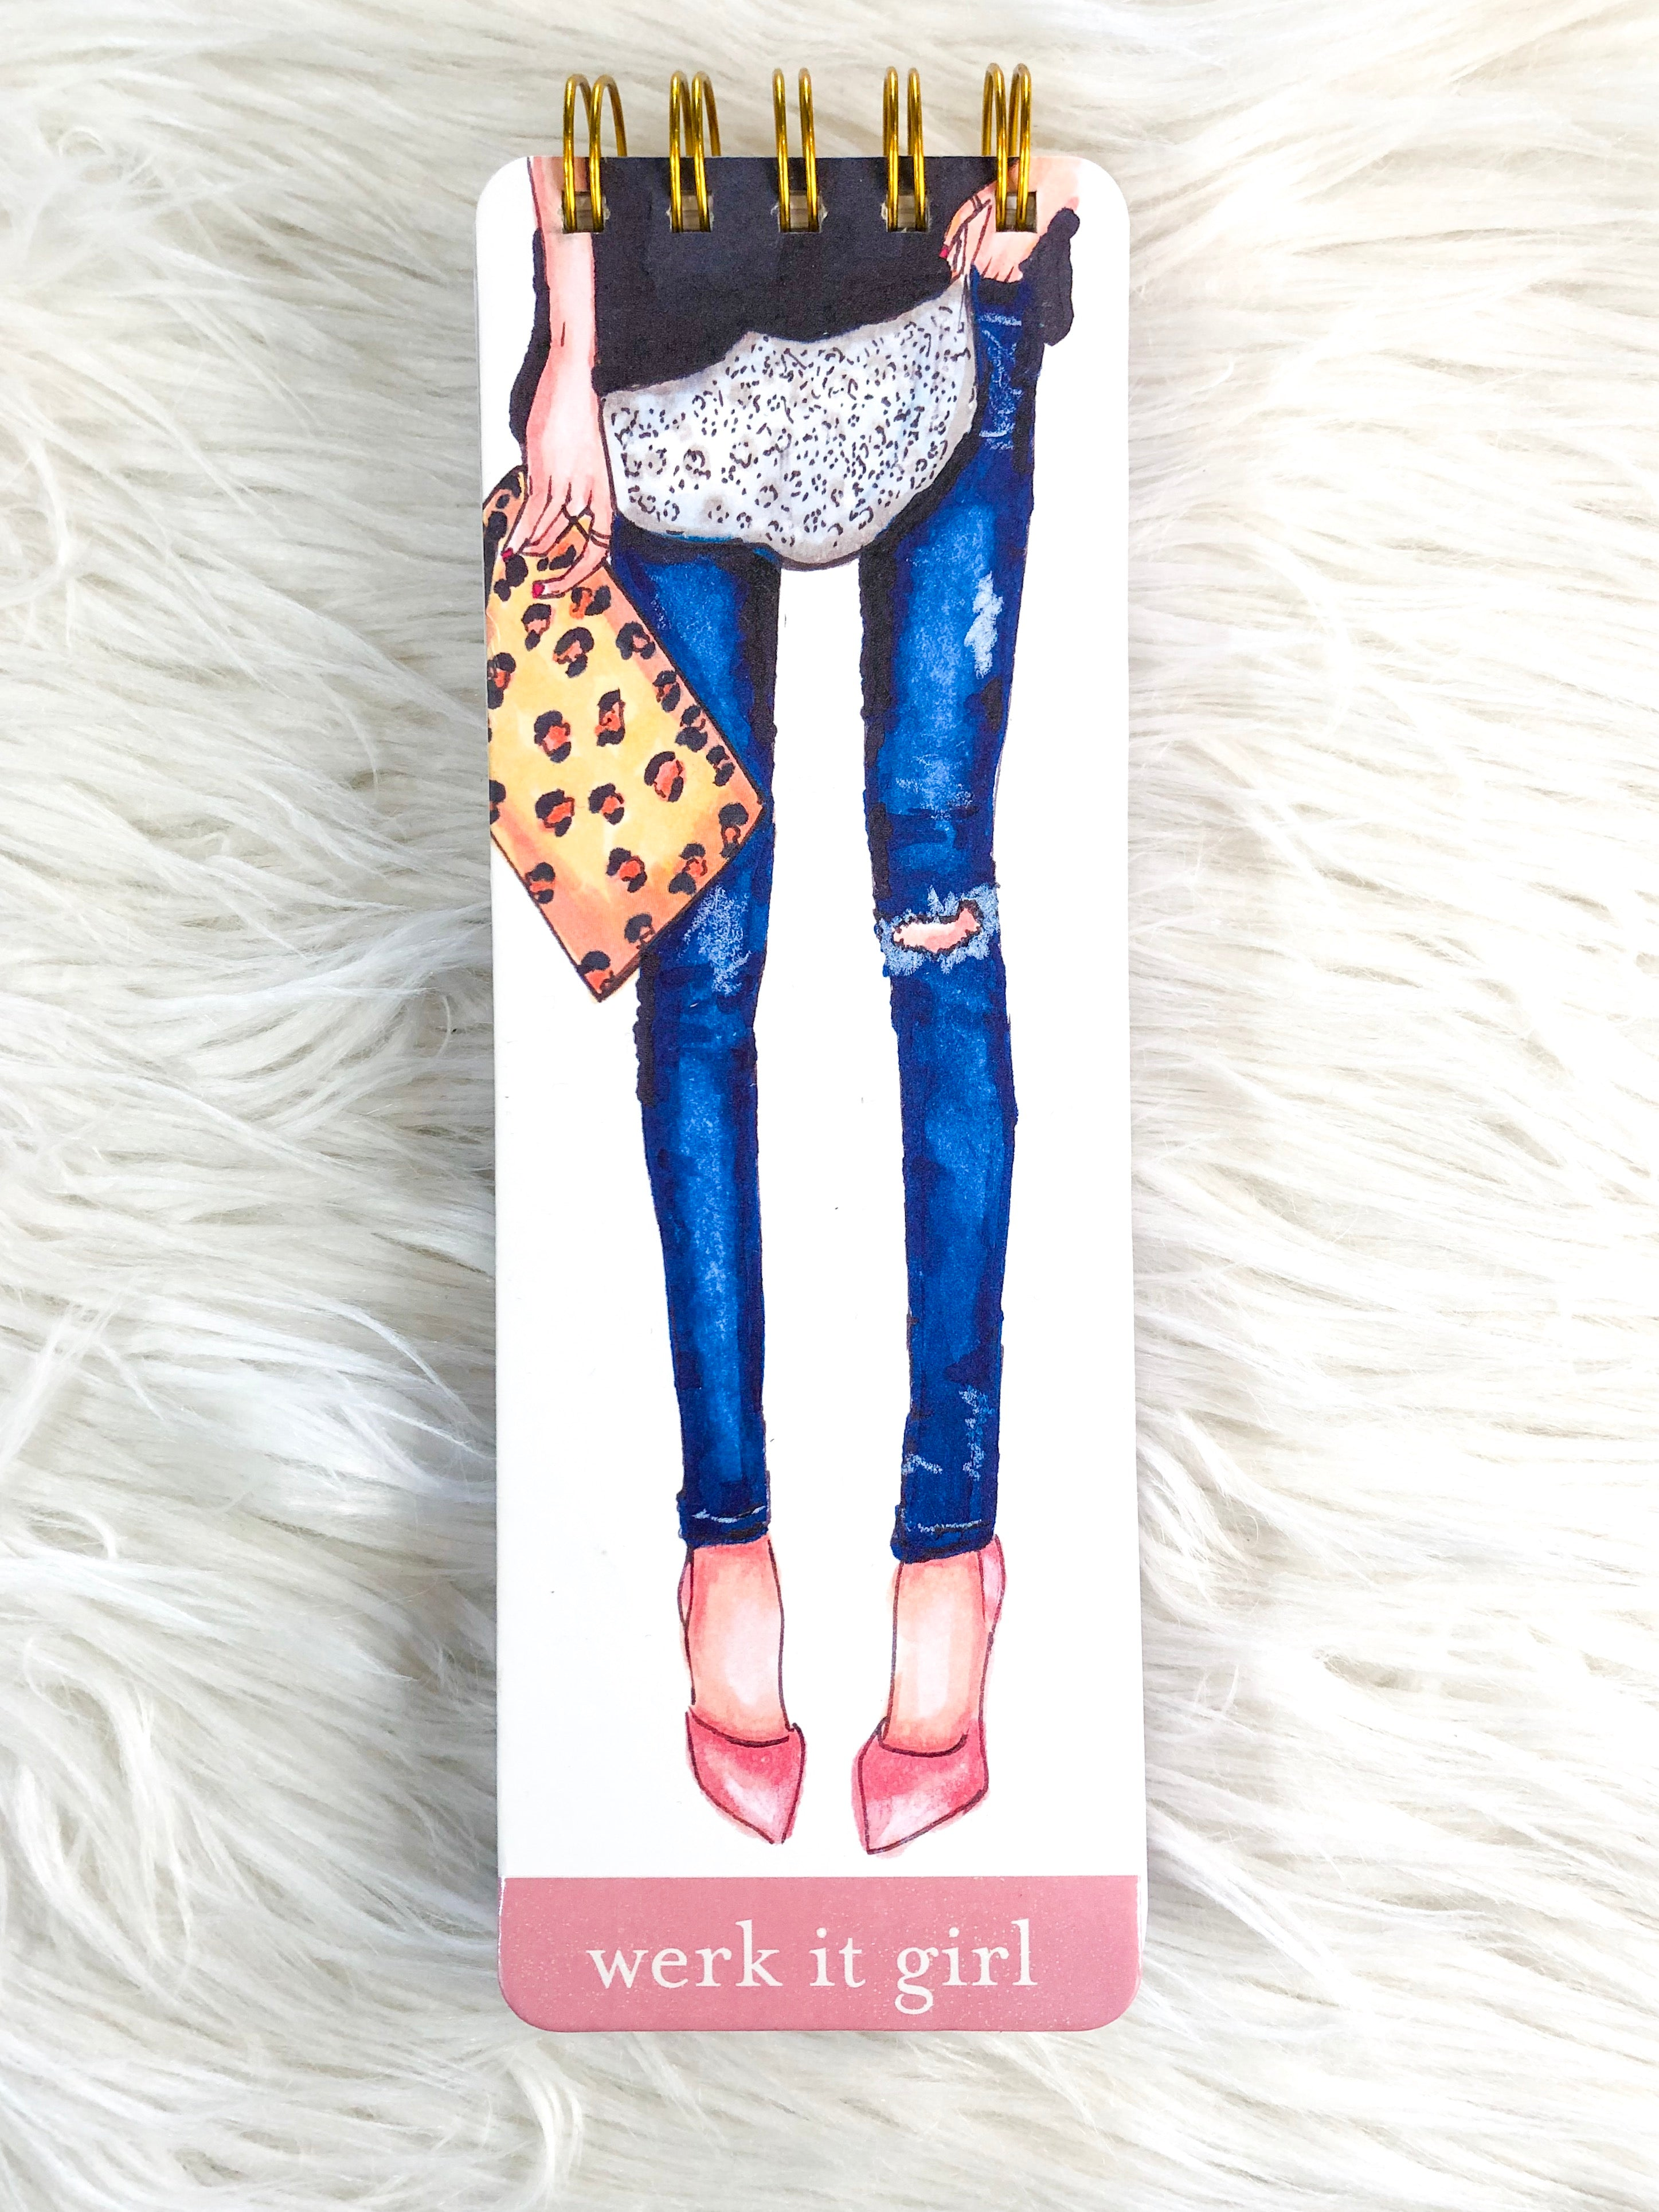 Werk it Girl skinny notepad